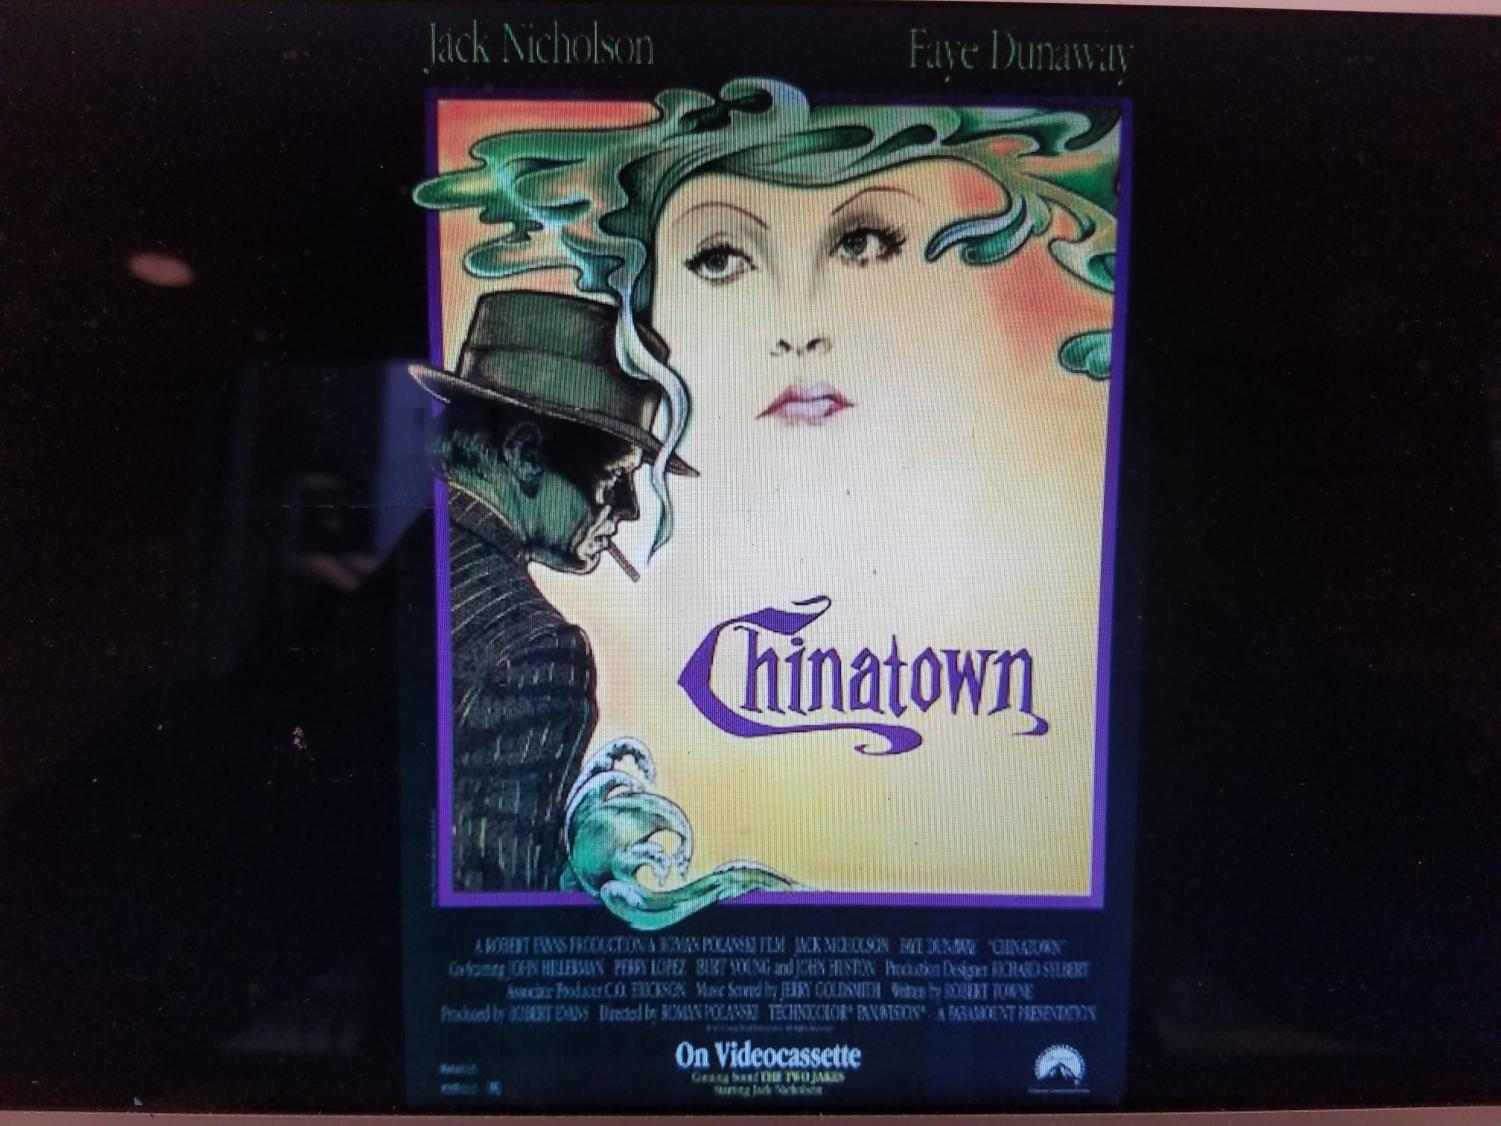 Robert Towne's award-winning film Chinatown stars Jack Nicholson as Jake Gittes and Faye Dunaway as Evelyn Mulwray.